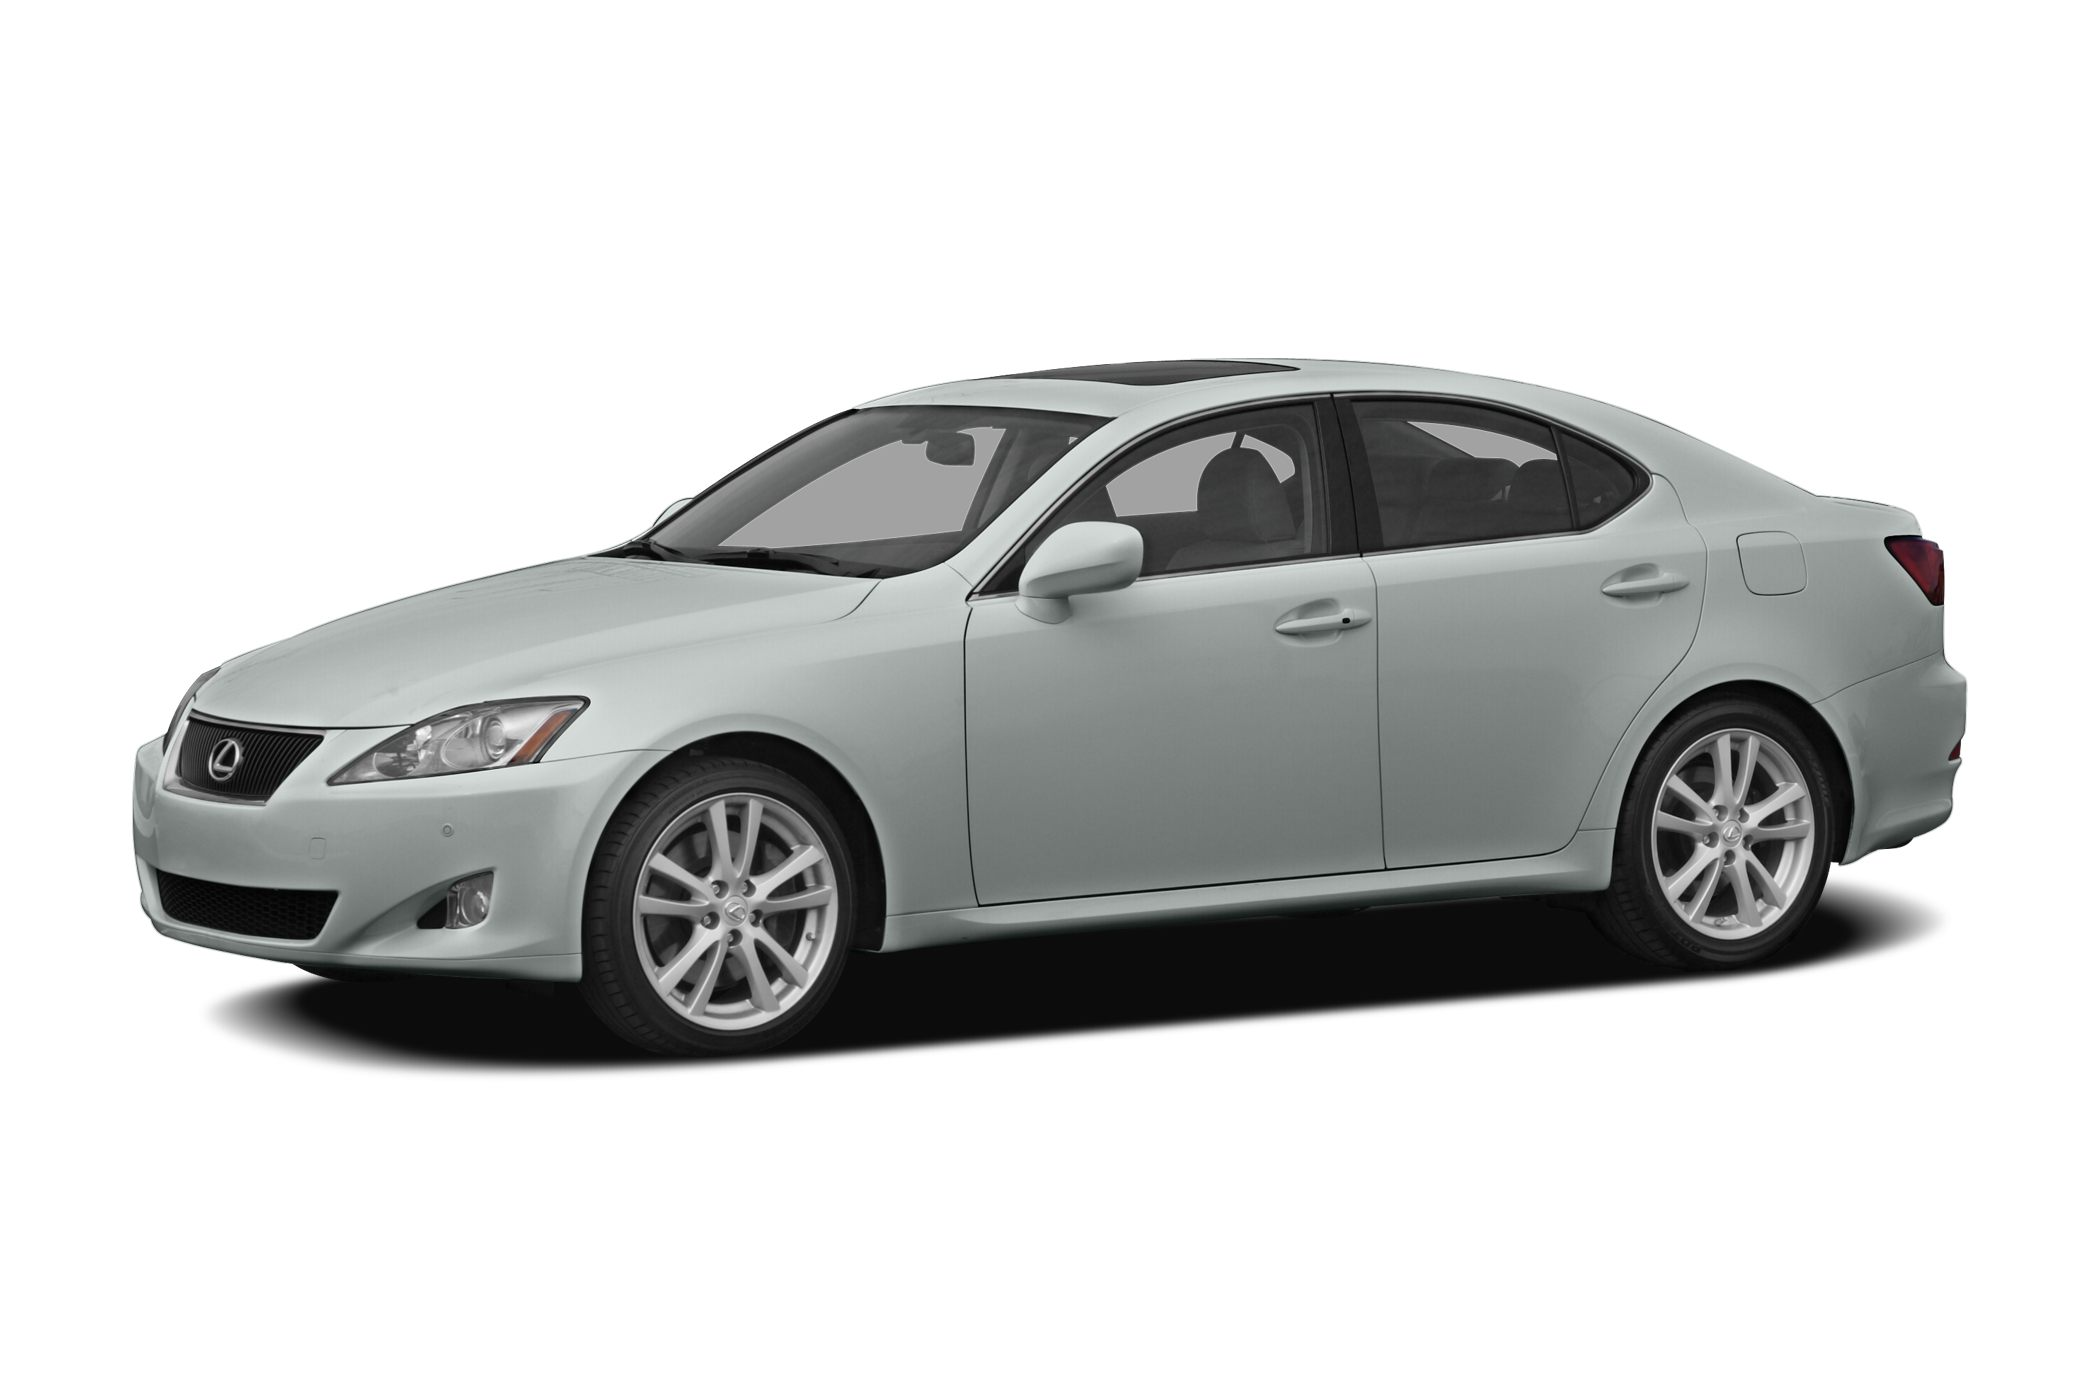 2007 Lexus IS 350 Base WHENIT COMES TO EXCELLENCE IN USED CAR SALES YOU KNOW YOU Miles 68278C